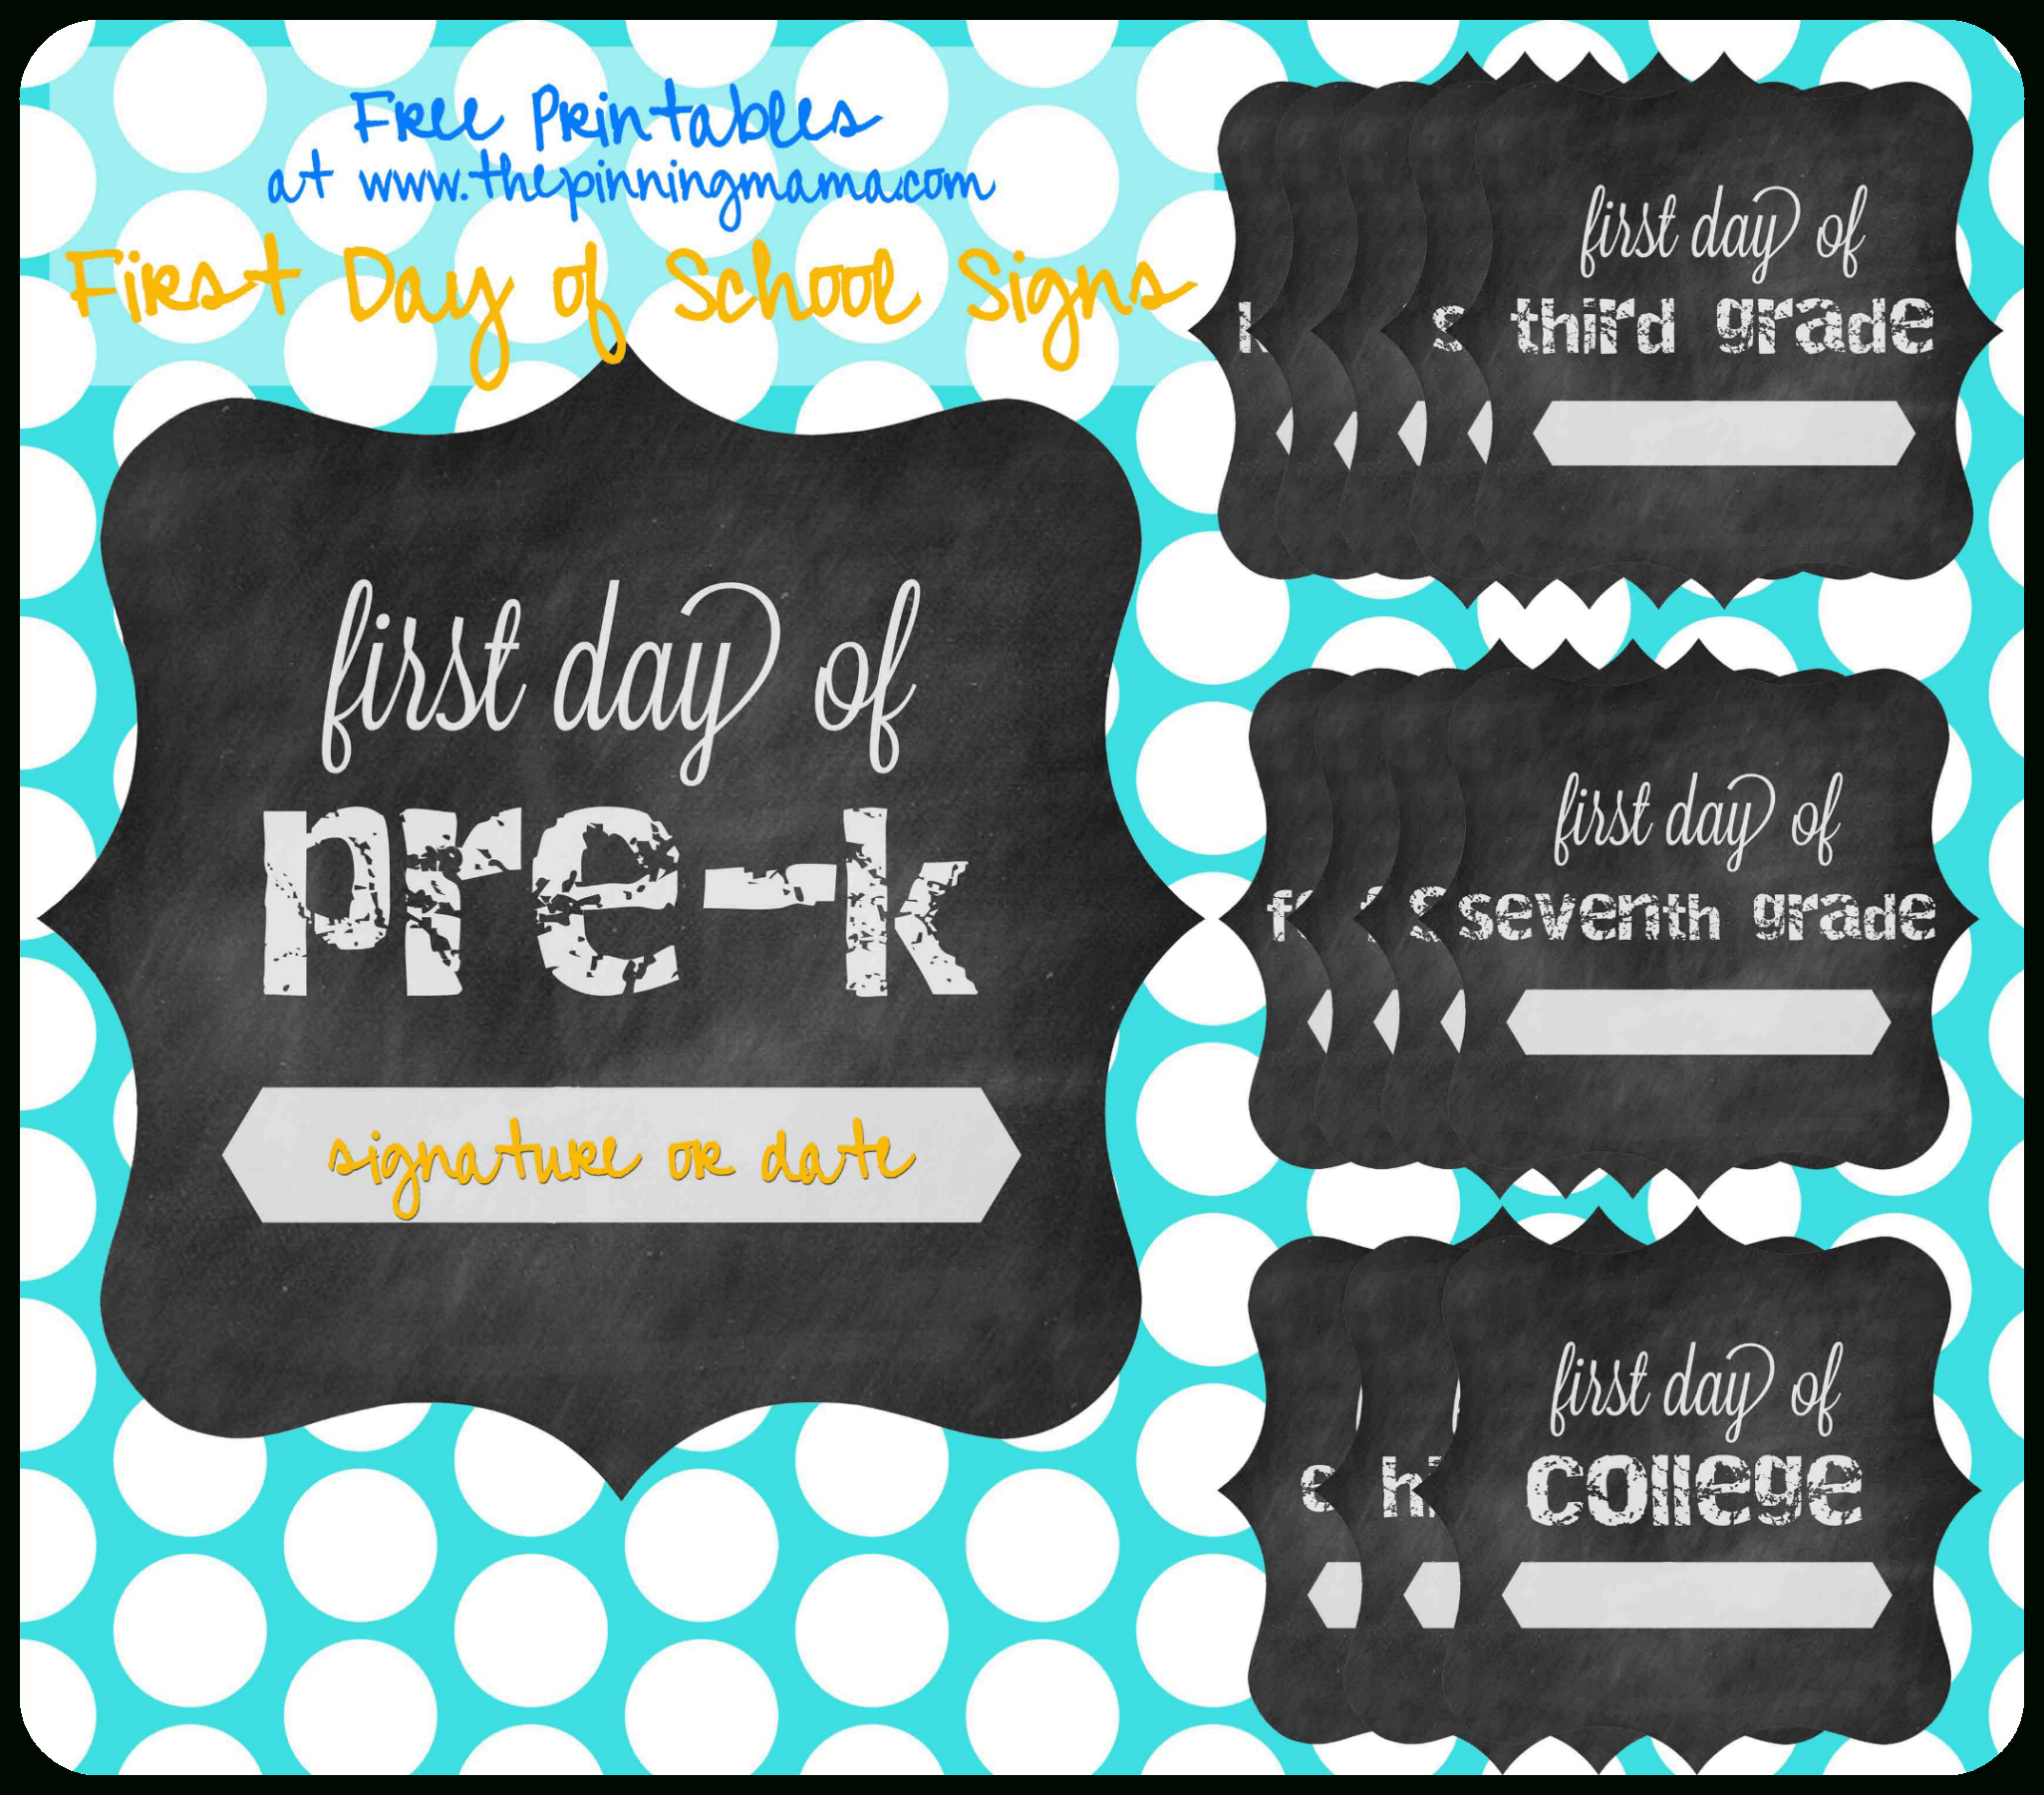 Free Printable} First Day Of School Chalkboard Sign • The Pinning Mama - Free Printable First Day Of School Chalkboard Signs